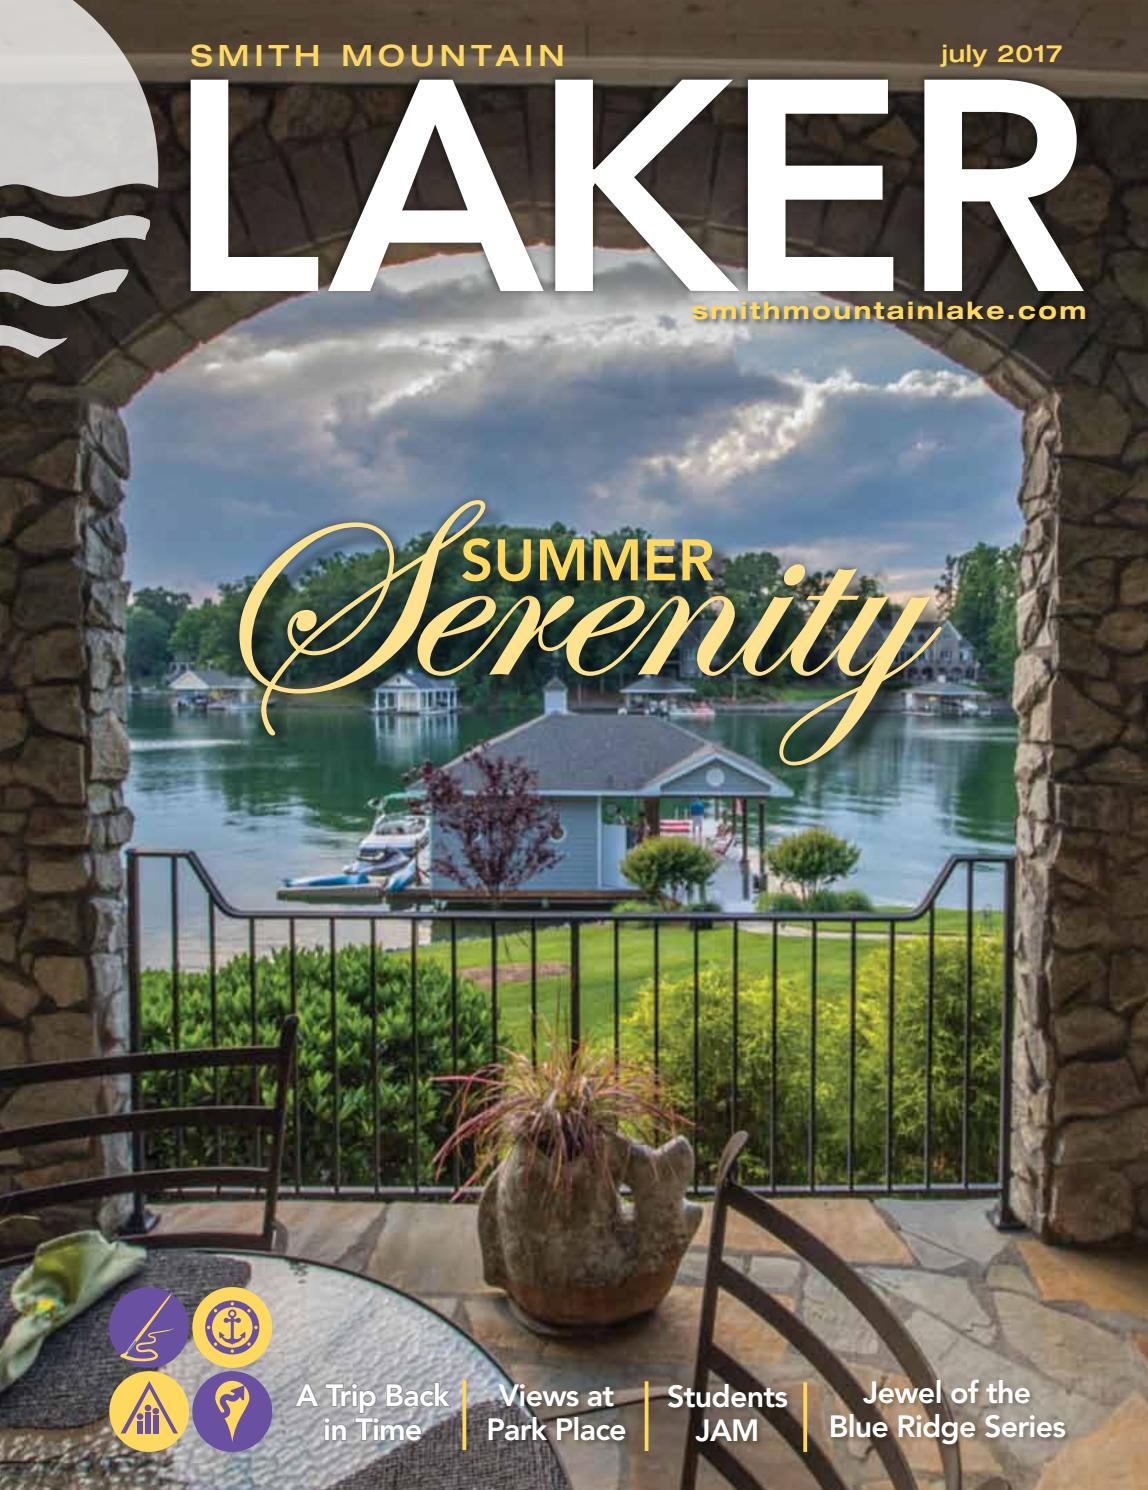 July 2017 Laker Magazine